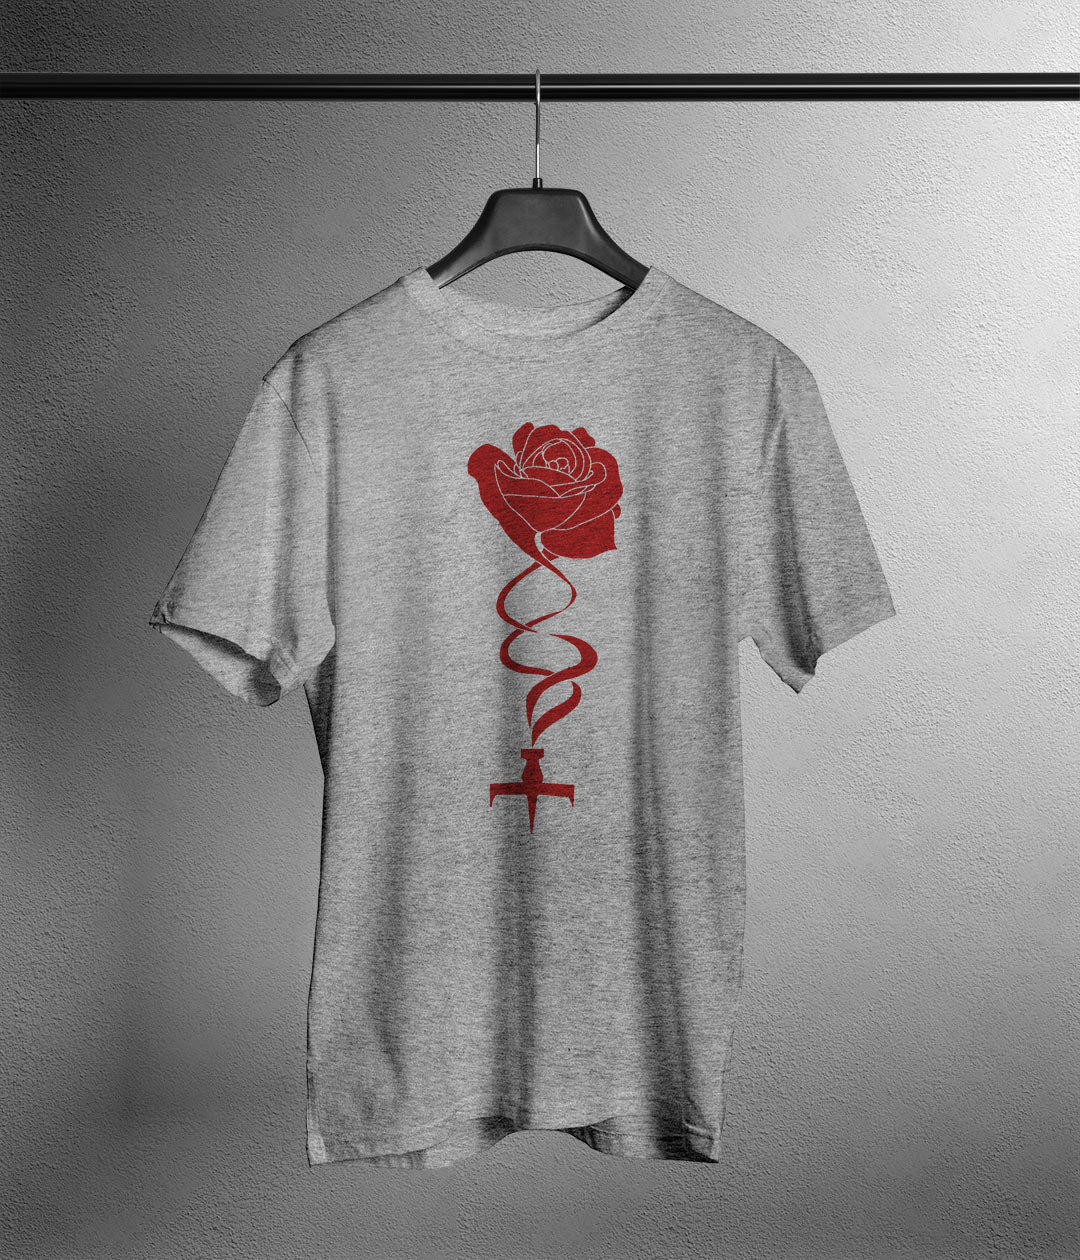 grey t shirt with anime style rose and ship printed in red